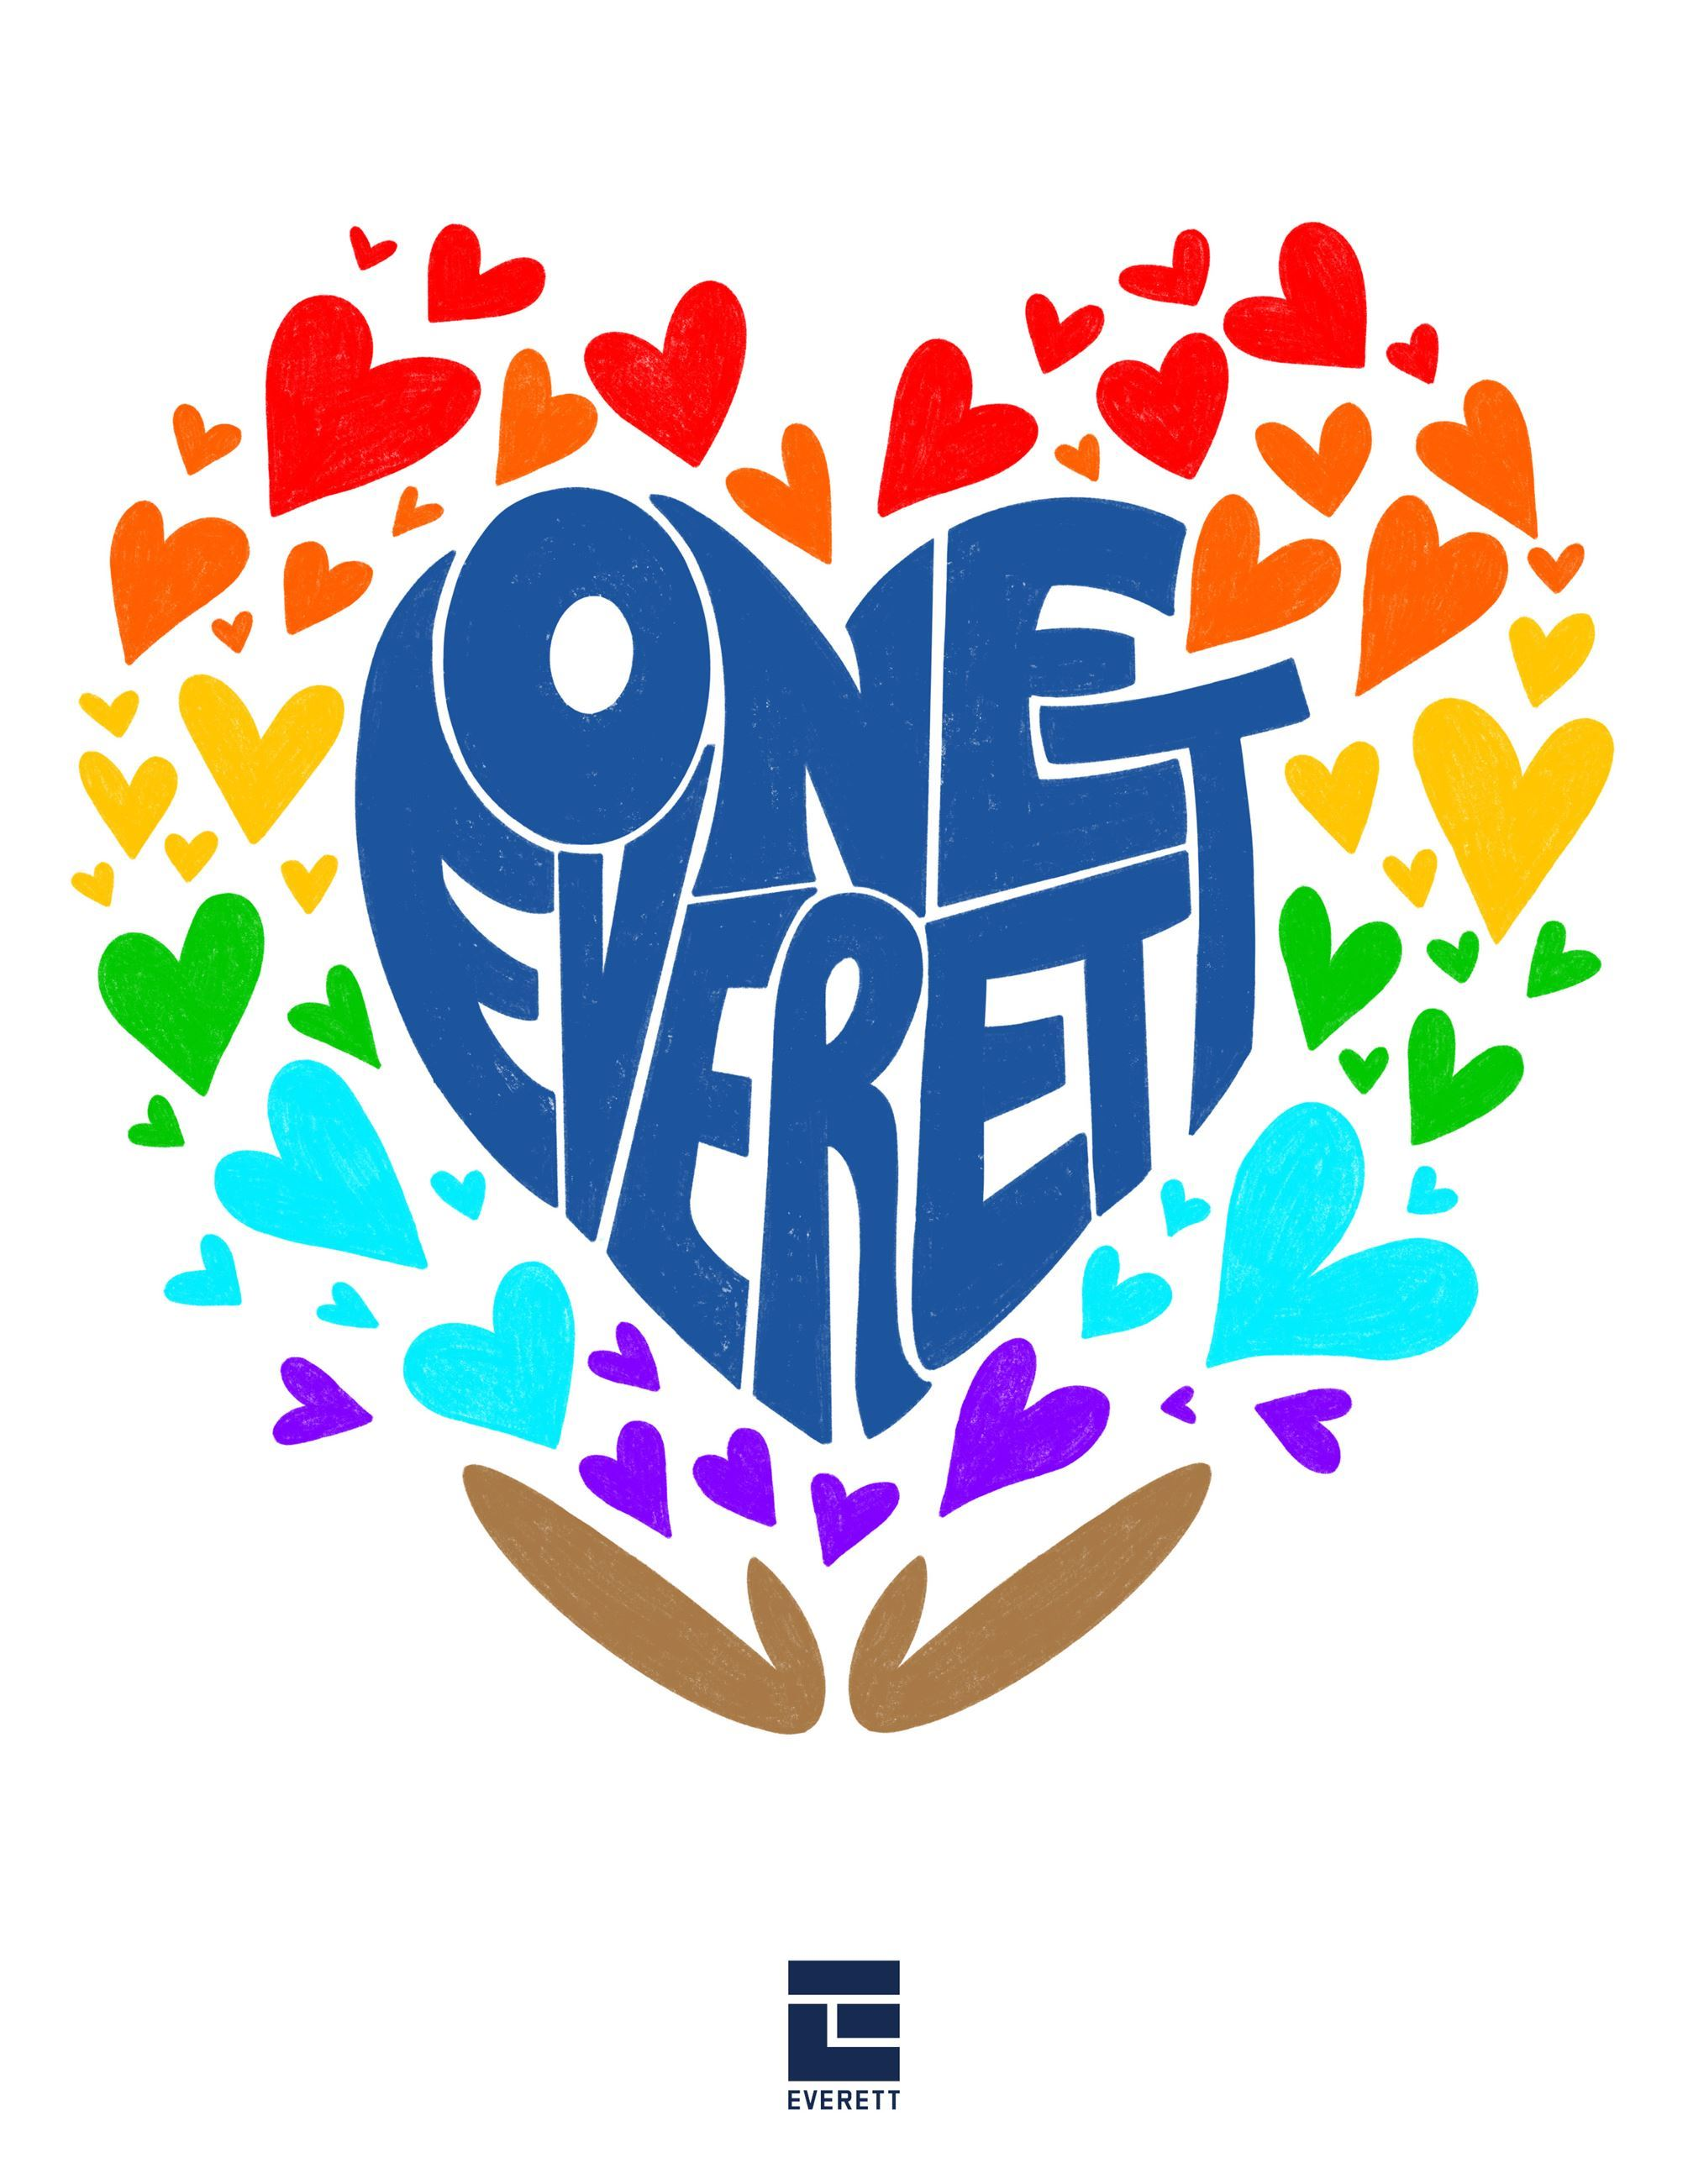 One Everett Logo, a colorful heart